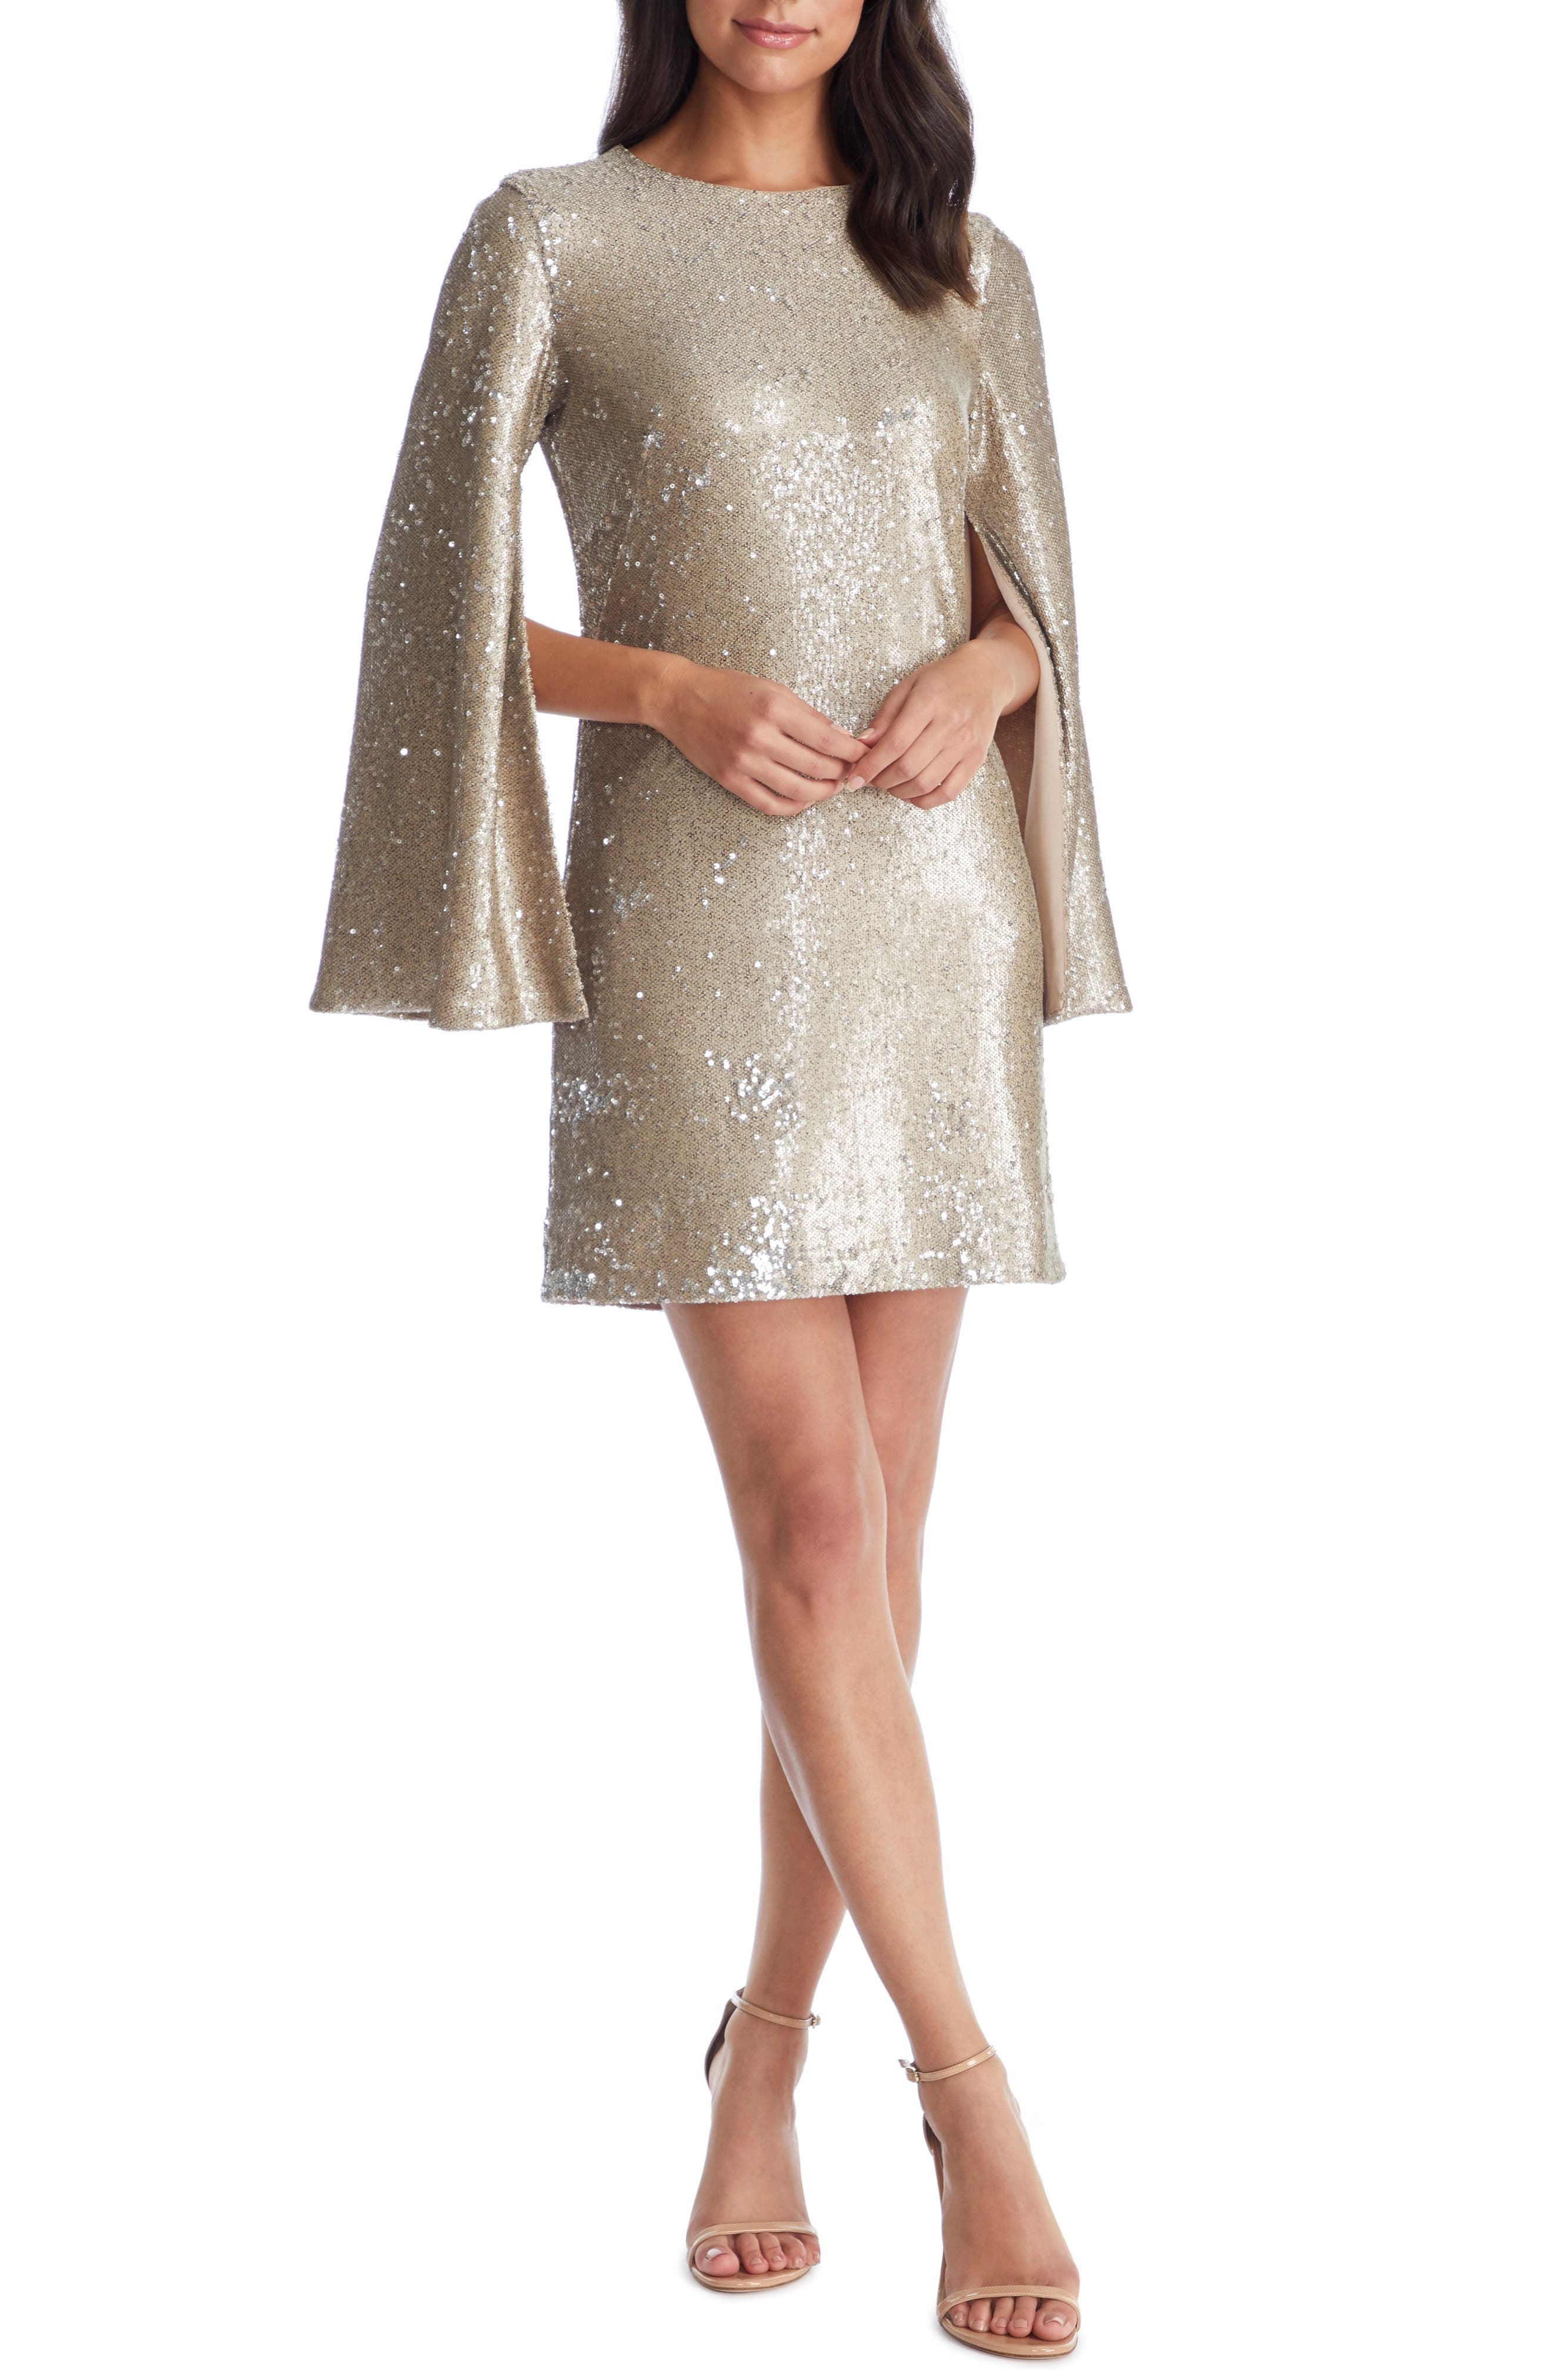 60s Mod Clothing Outfit Ideas Womens Dress The Population Liza Cape Sleeve Sequin Minidress Size XX-Large - Beige $248.00 AT vintagedancer.com